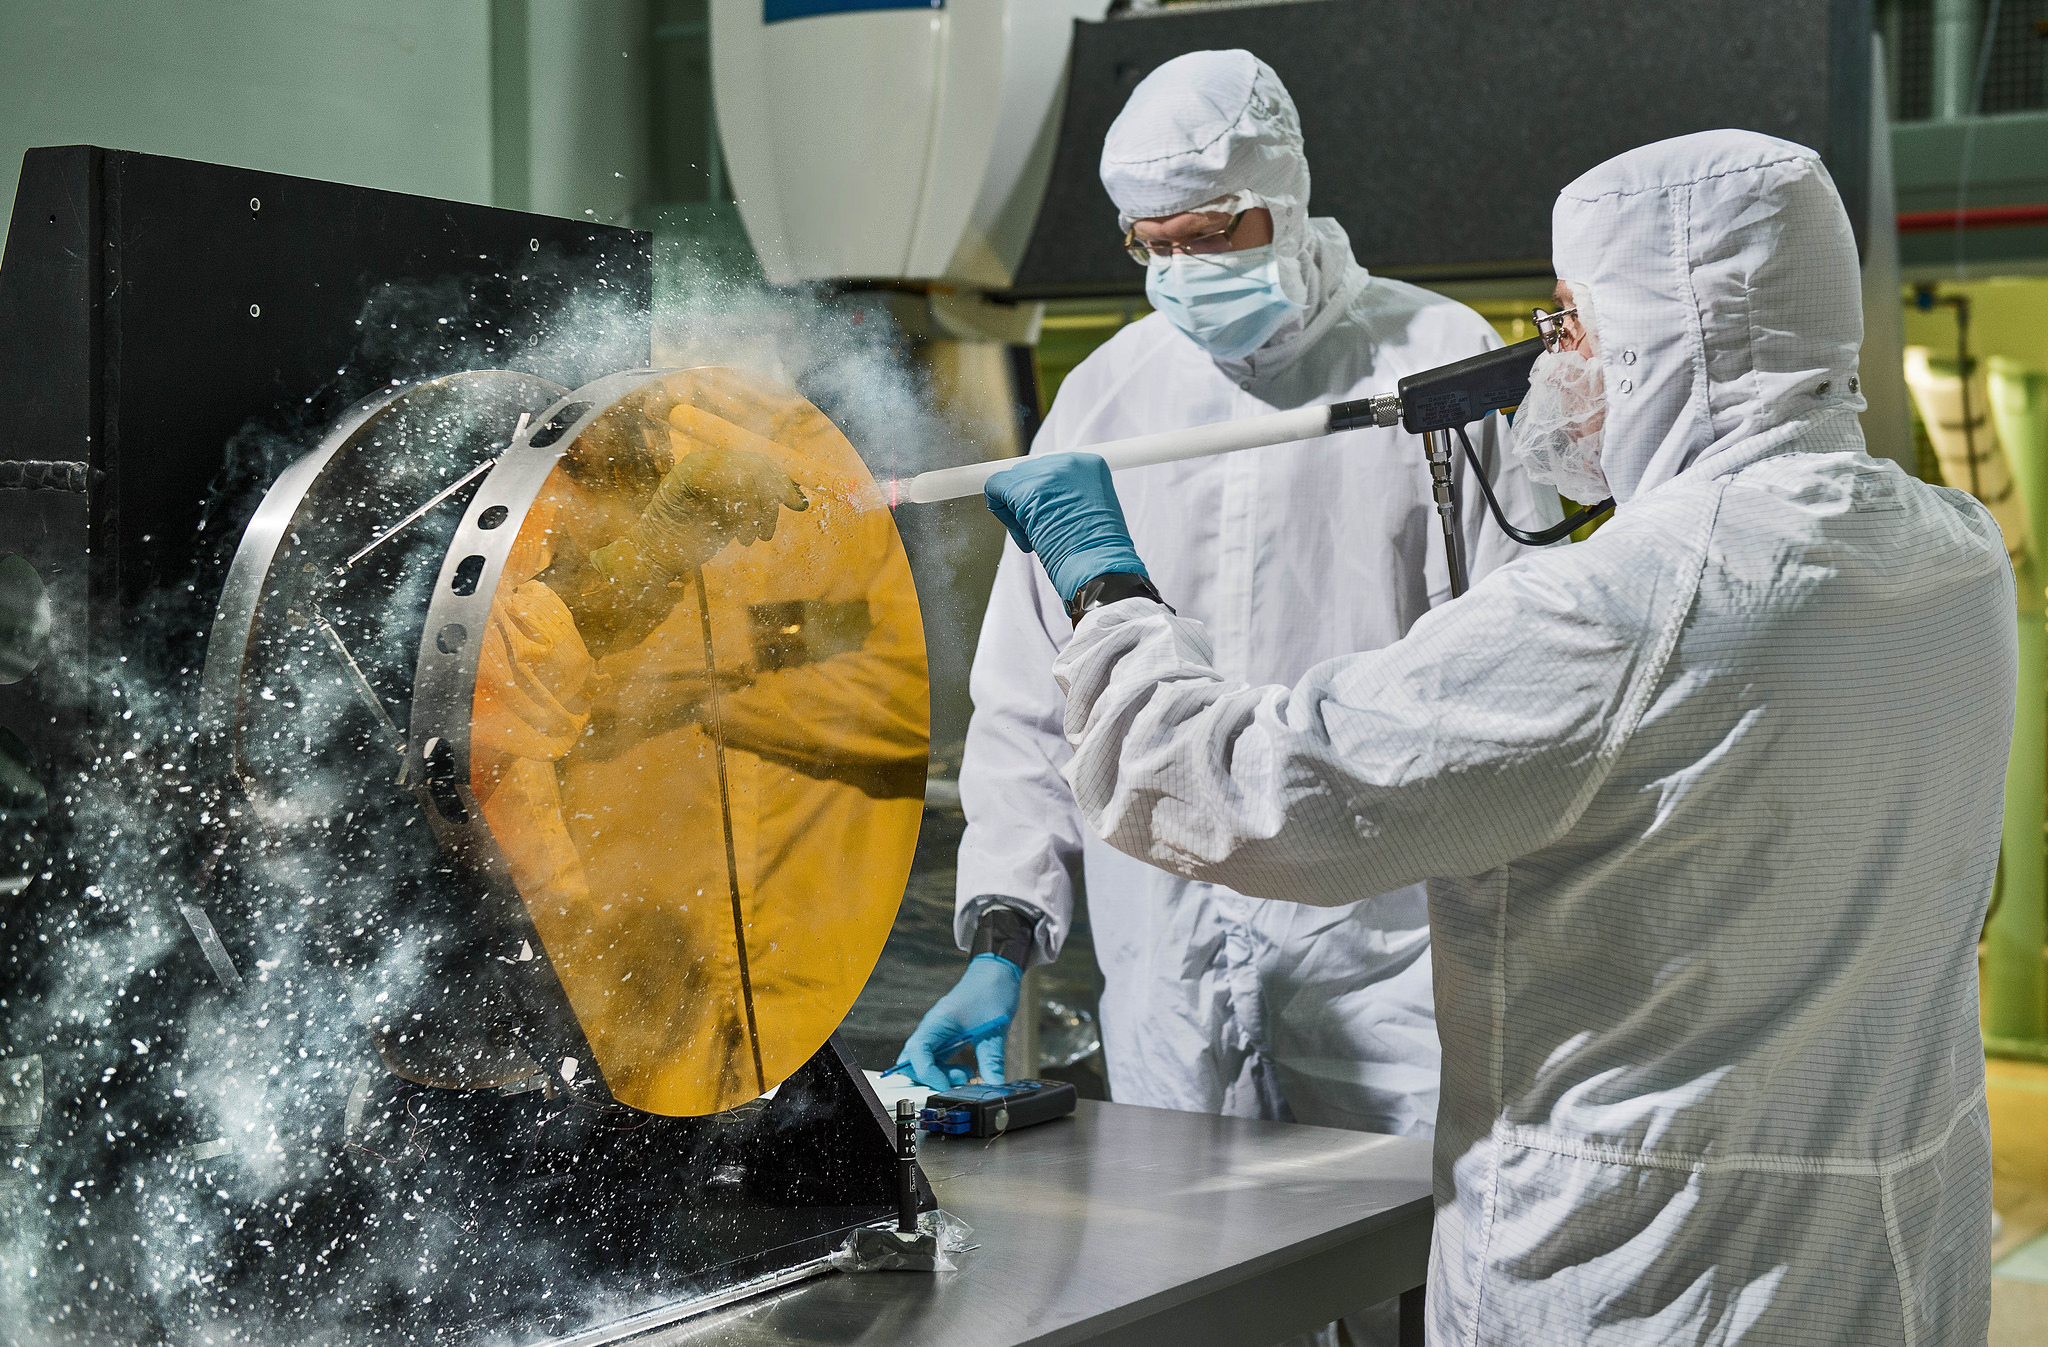 Engineers Clean Mirror with Carbon Dioxide Snow